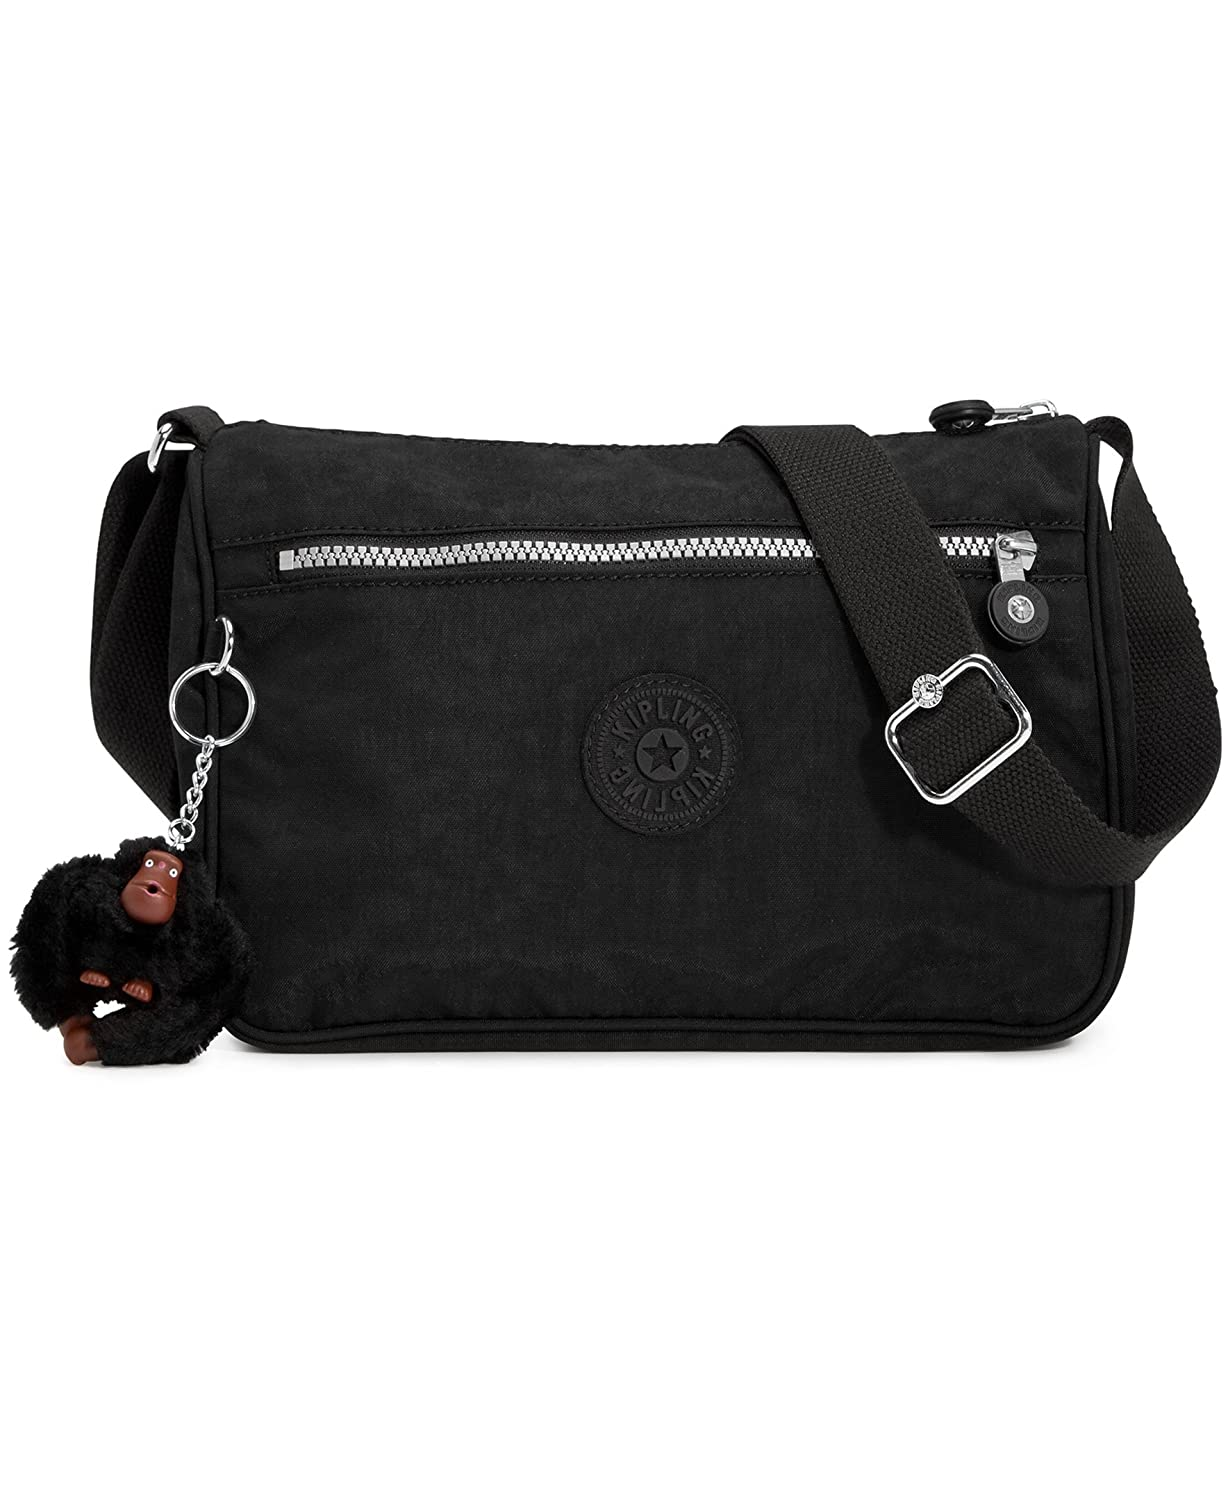 great look cheap for discount details for Kipling Callie Crossbody: Amazon.co.uk: Luggage